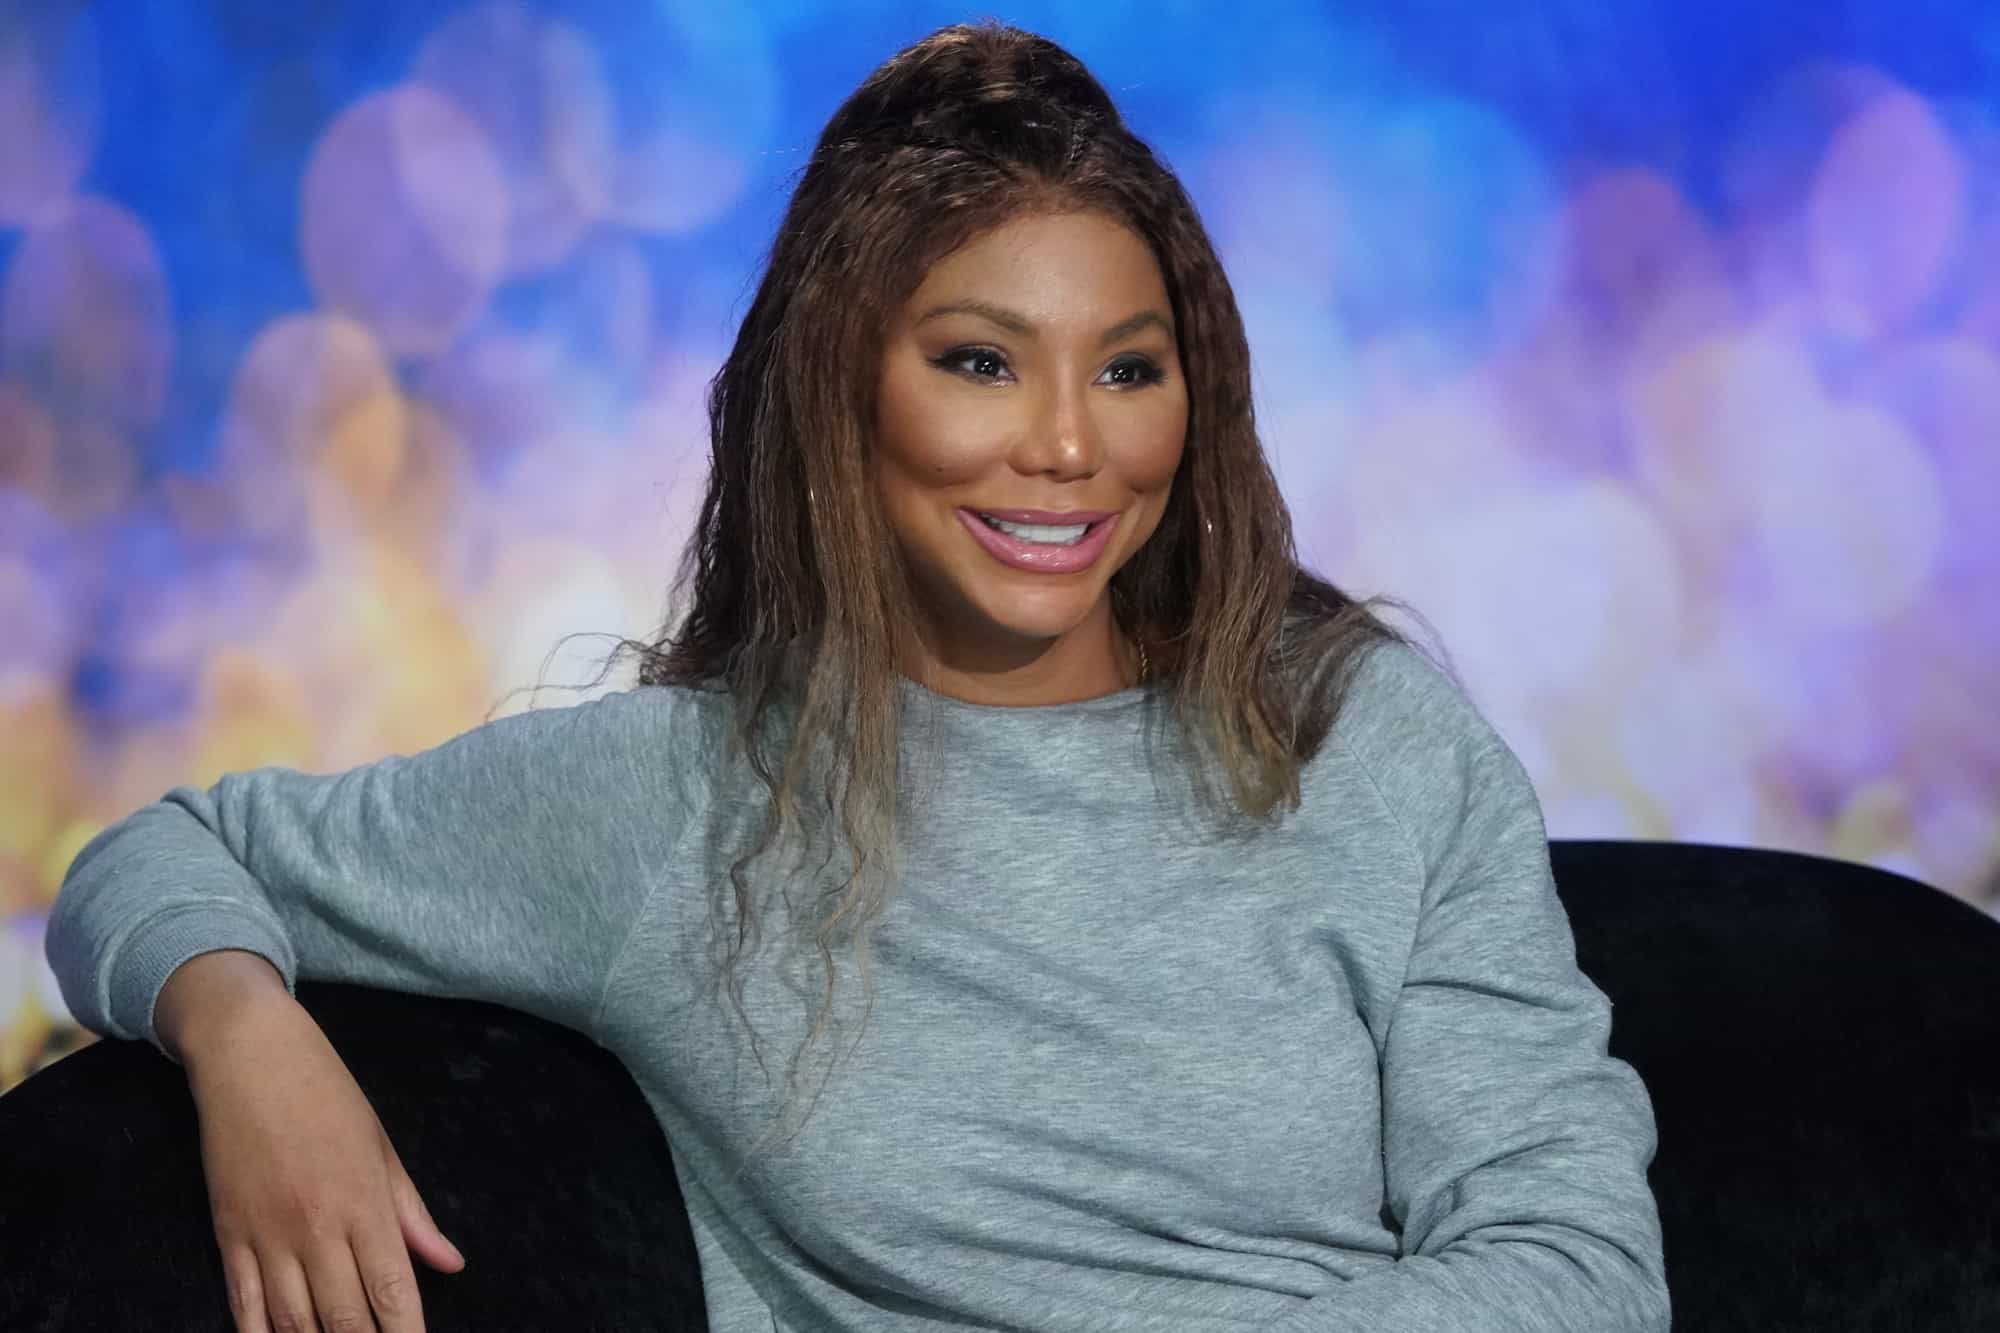 Tamar Braxton Goes Live On Facebook Today To Speak About Her New Show - Here Are The Details